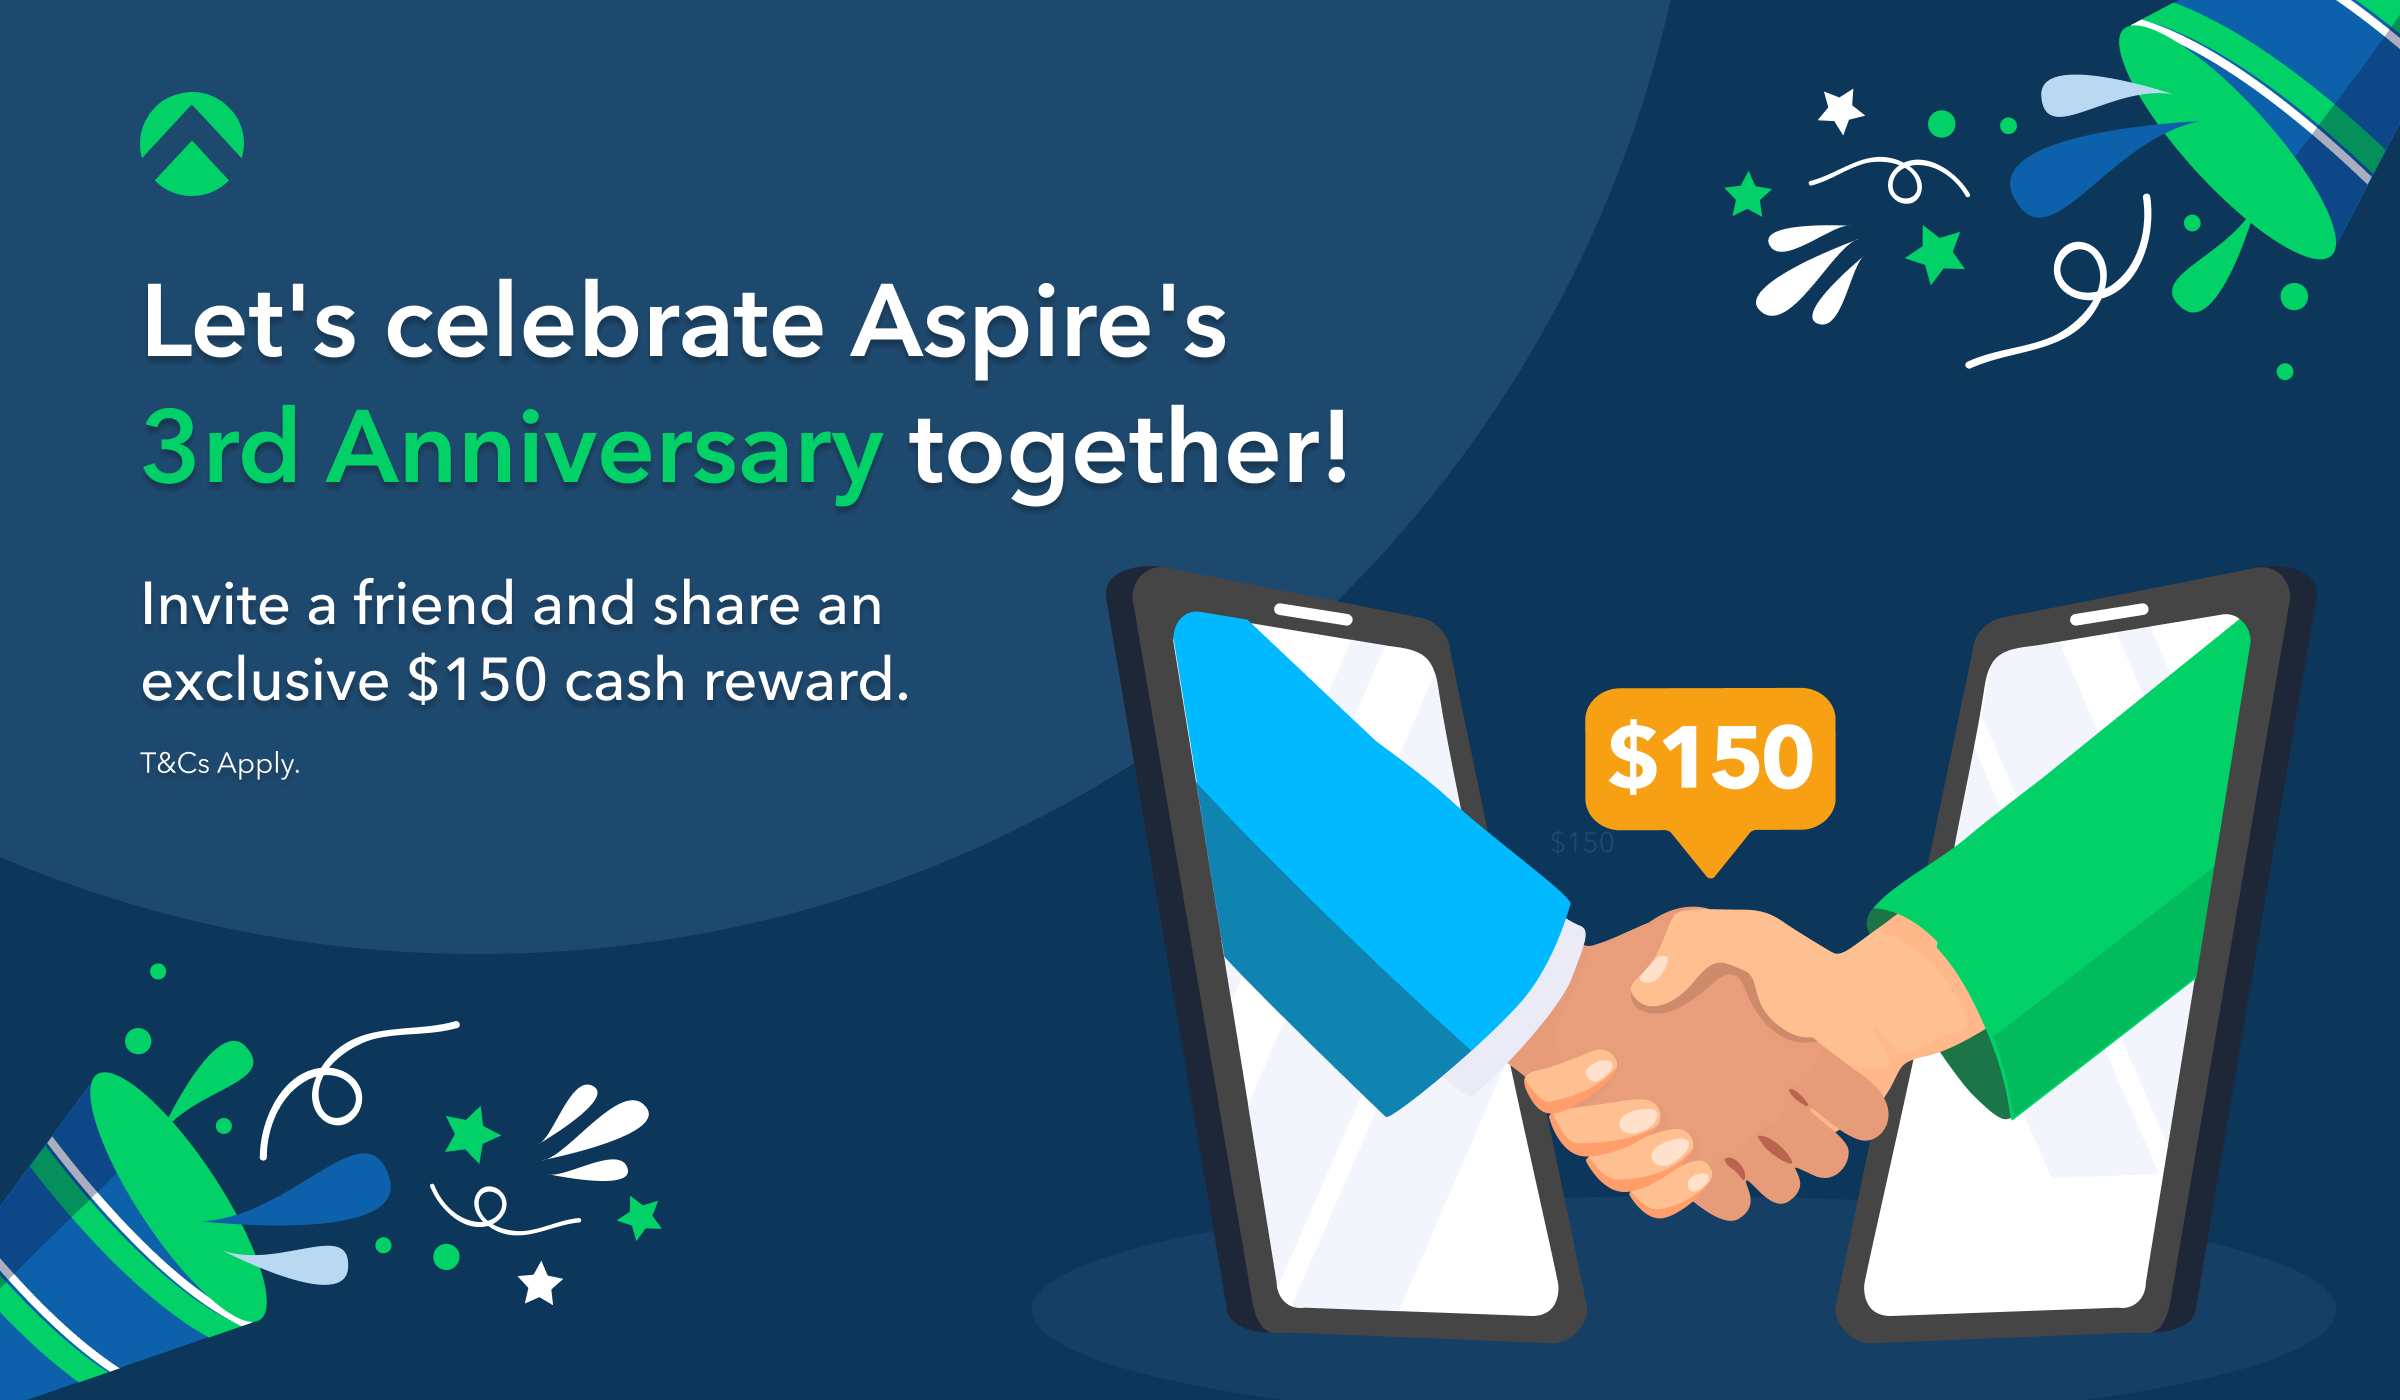 Celebrate Aspire's 3rd Anniversary With Us! Refer a friend and share an exclusive $150 cash reward